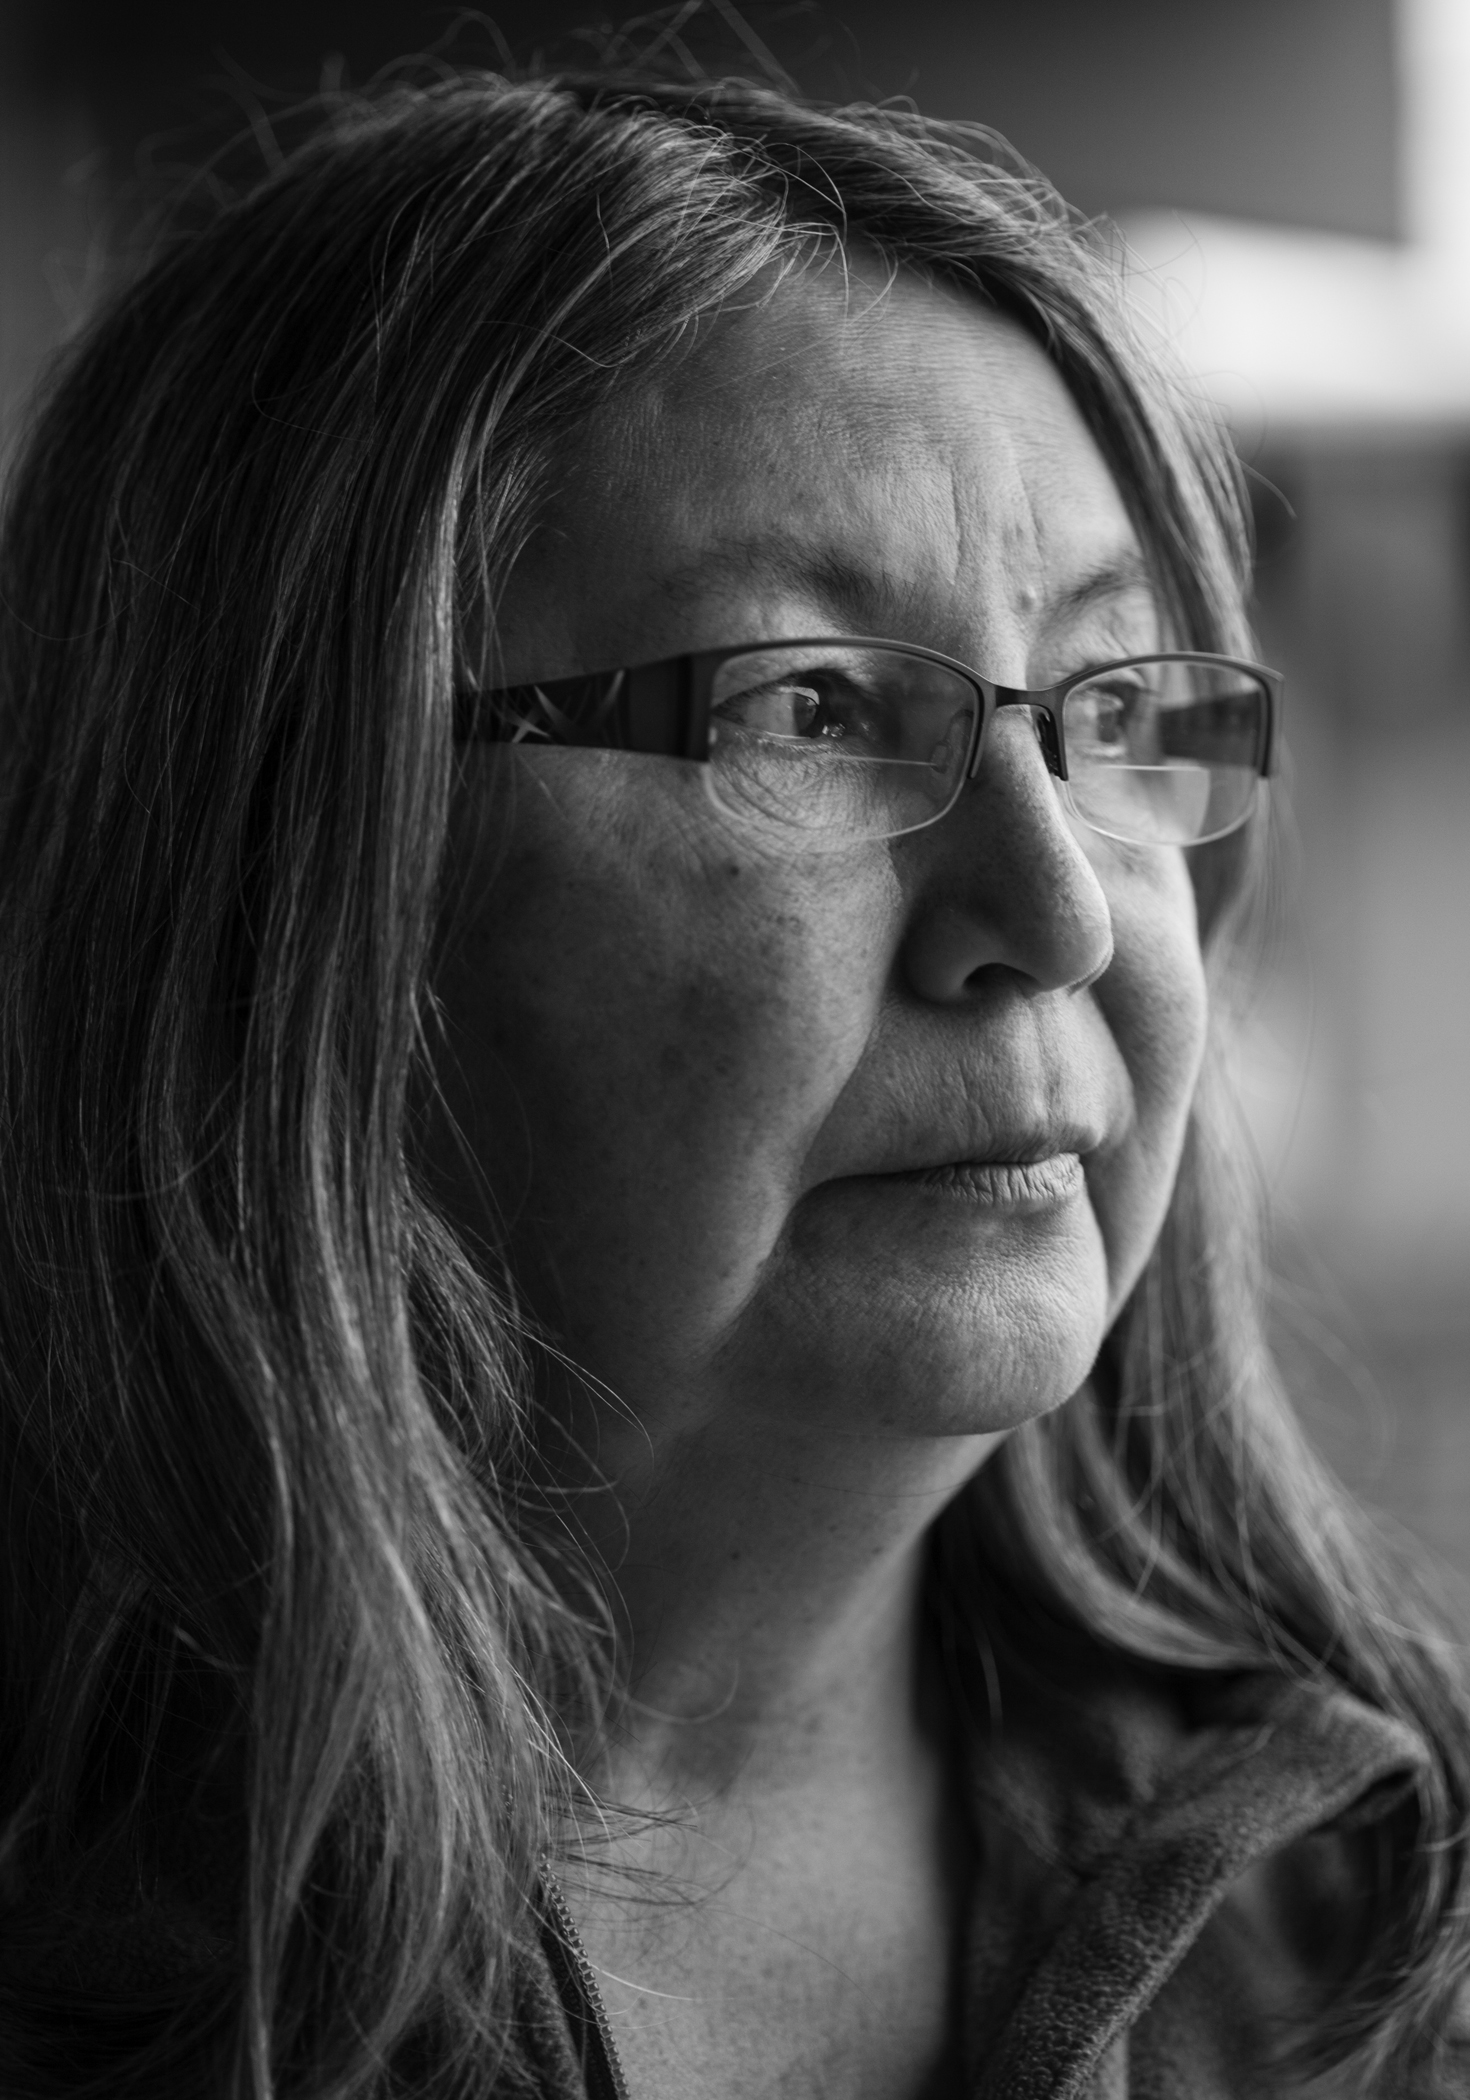 KCA-014 Ki-tah-pah-tumak aski ethinewak [keeper of the land] Shirley, O-Pipon-Na-Piwin Cree Nation, 2016, AP.jpg